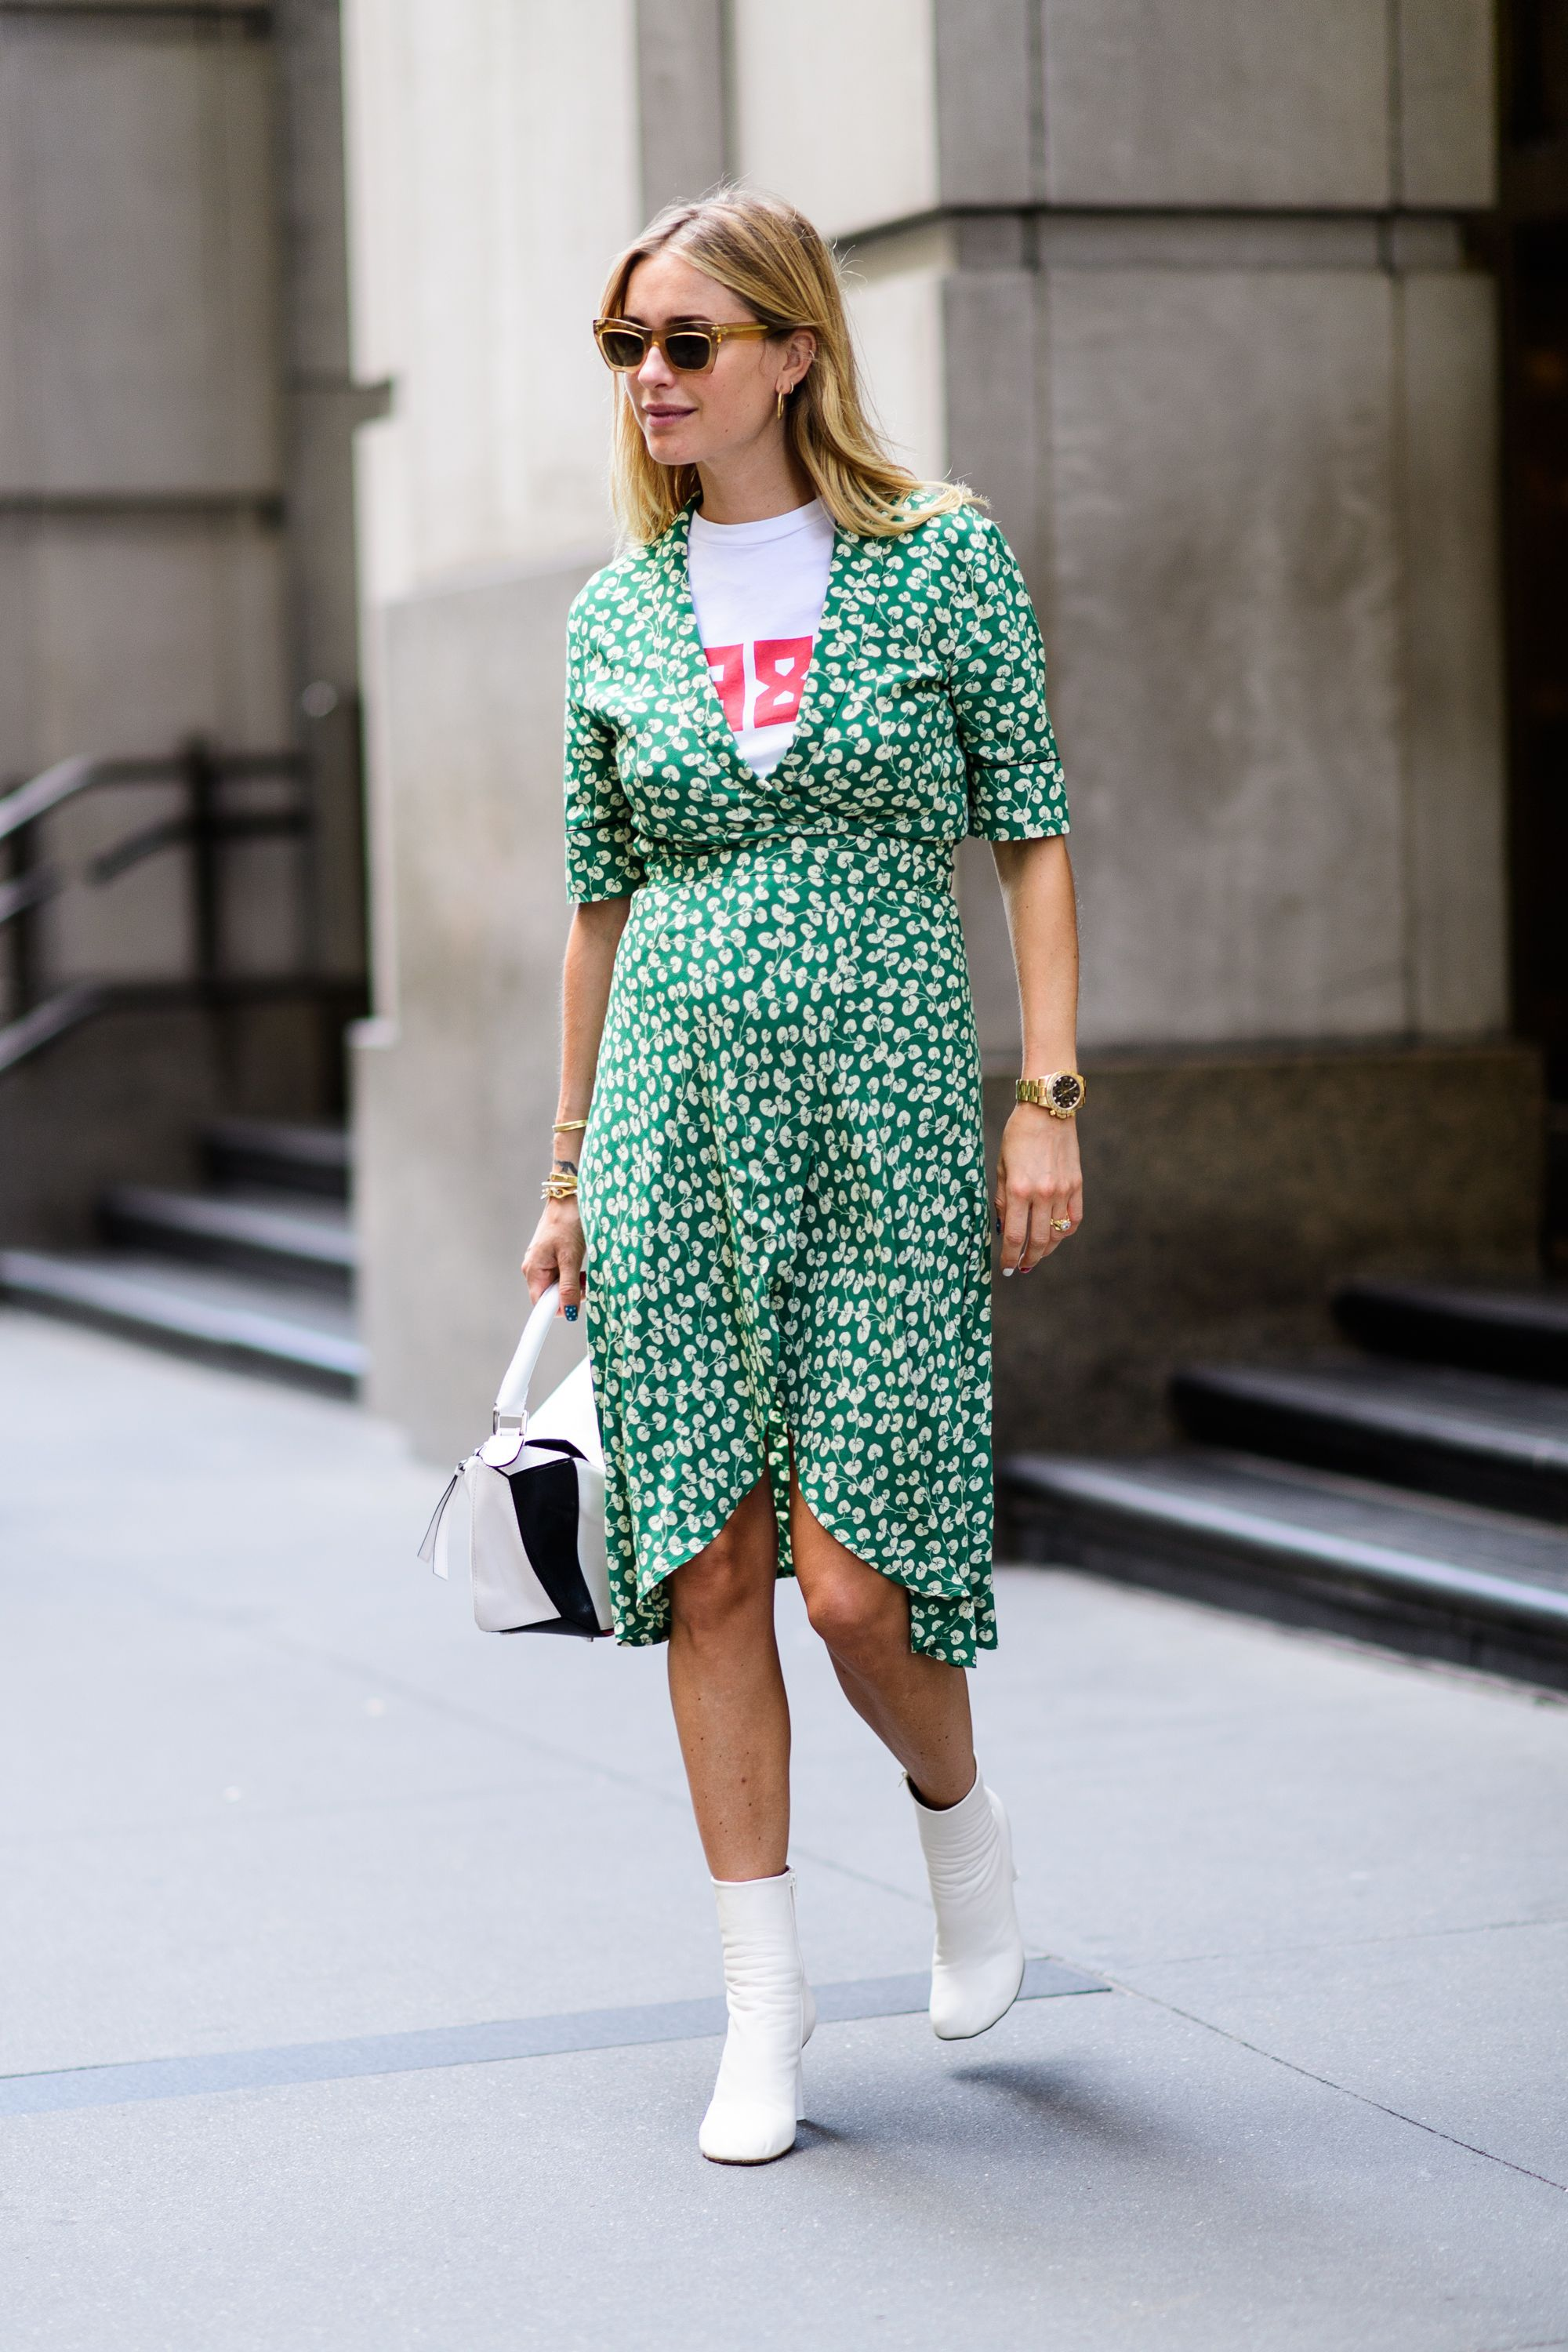 55ccf76939 Cute Spring Outfits for Women - 50 Spring Outfits We re Dying To Try